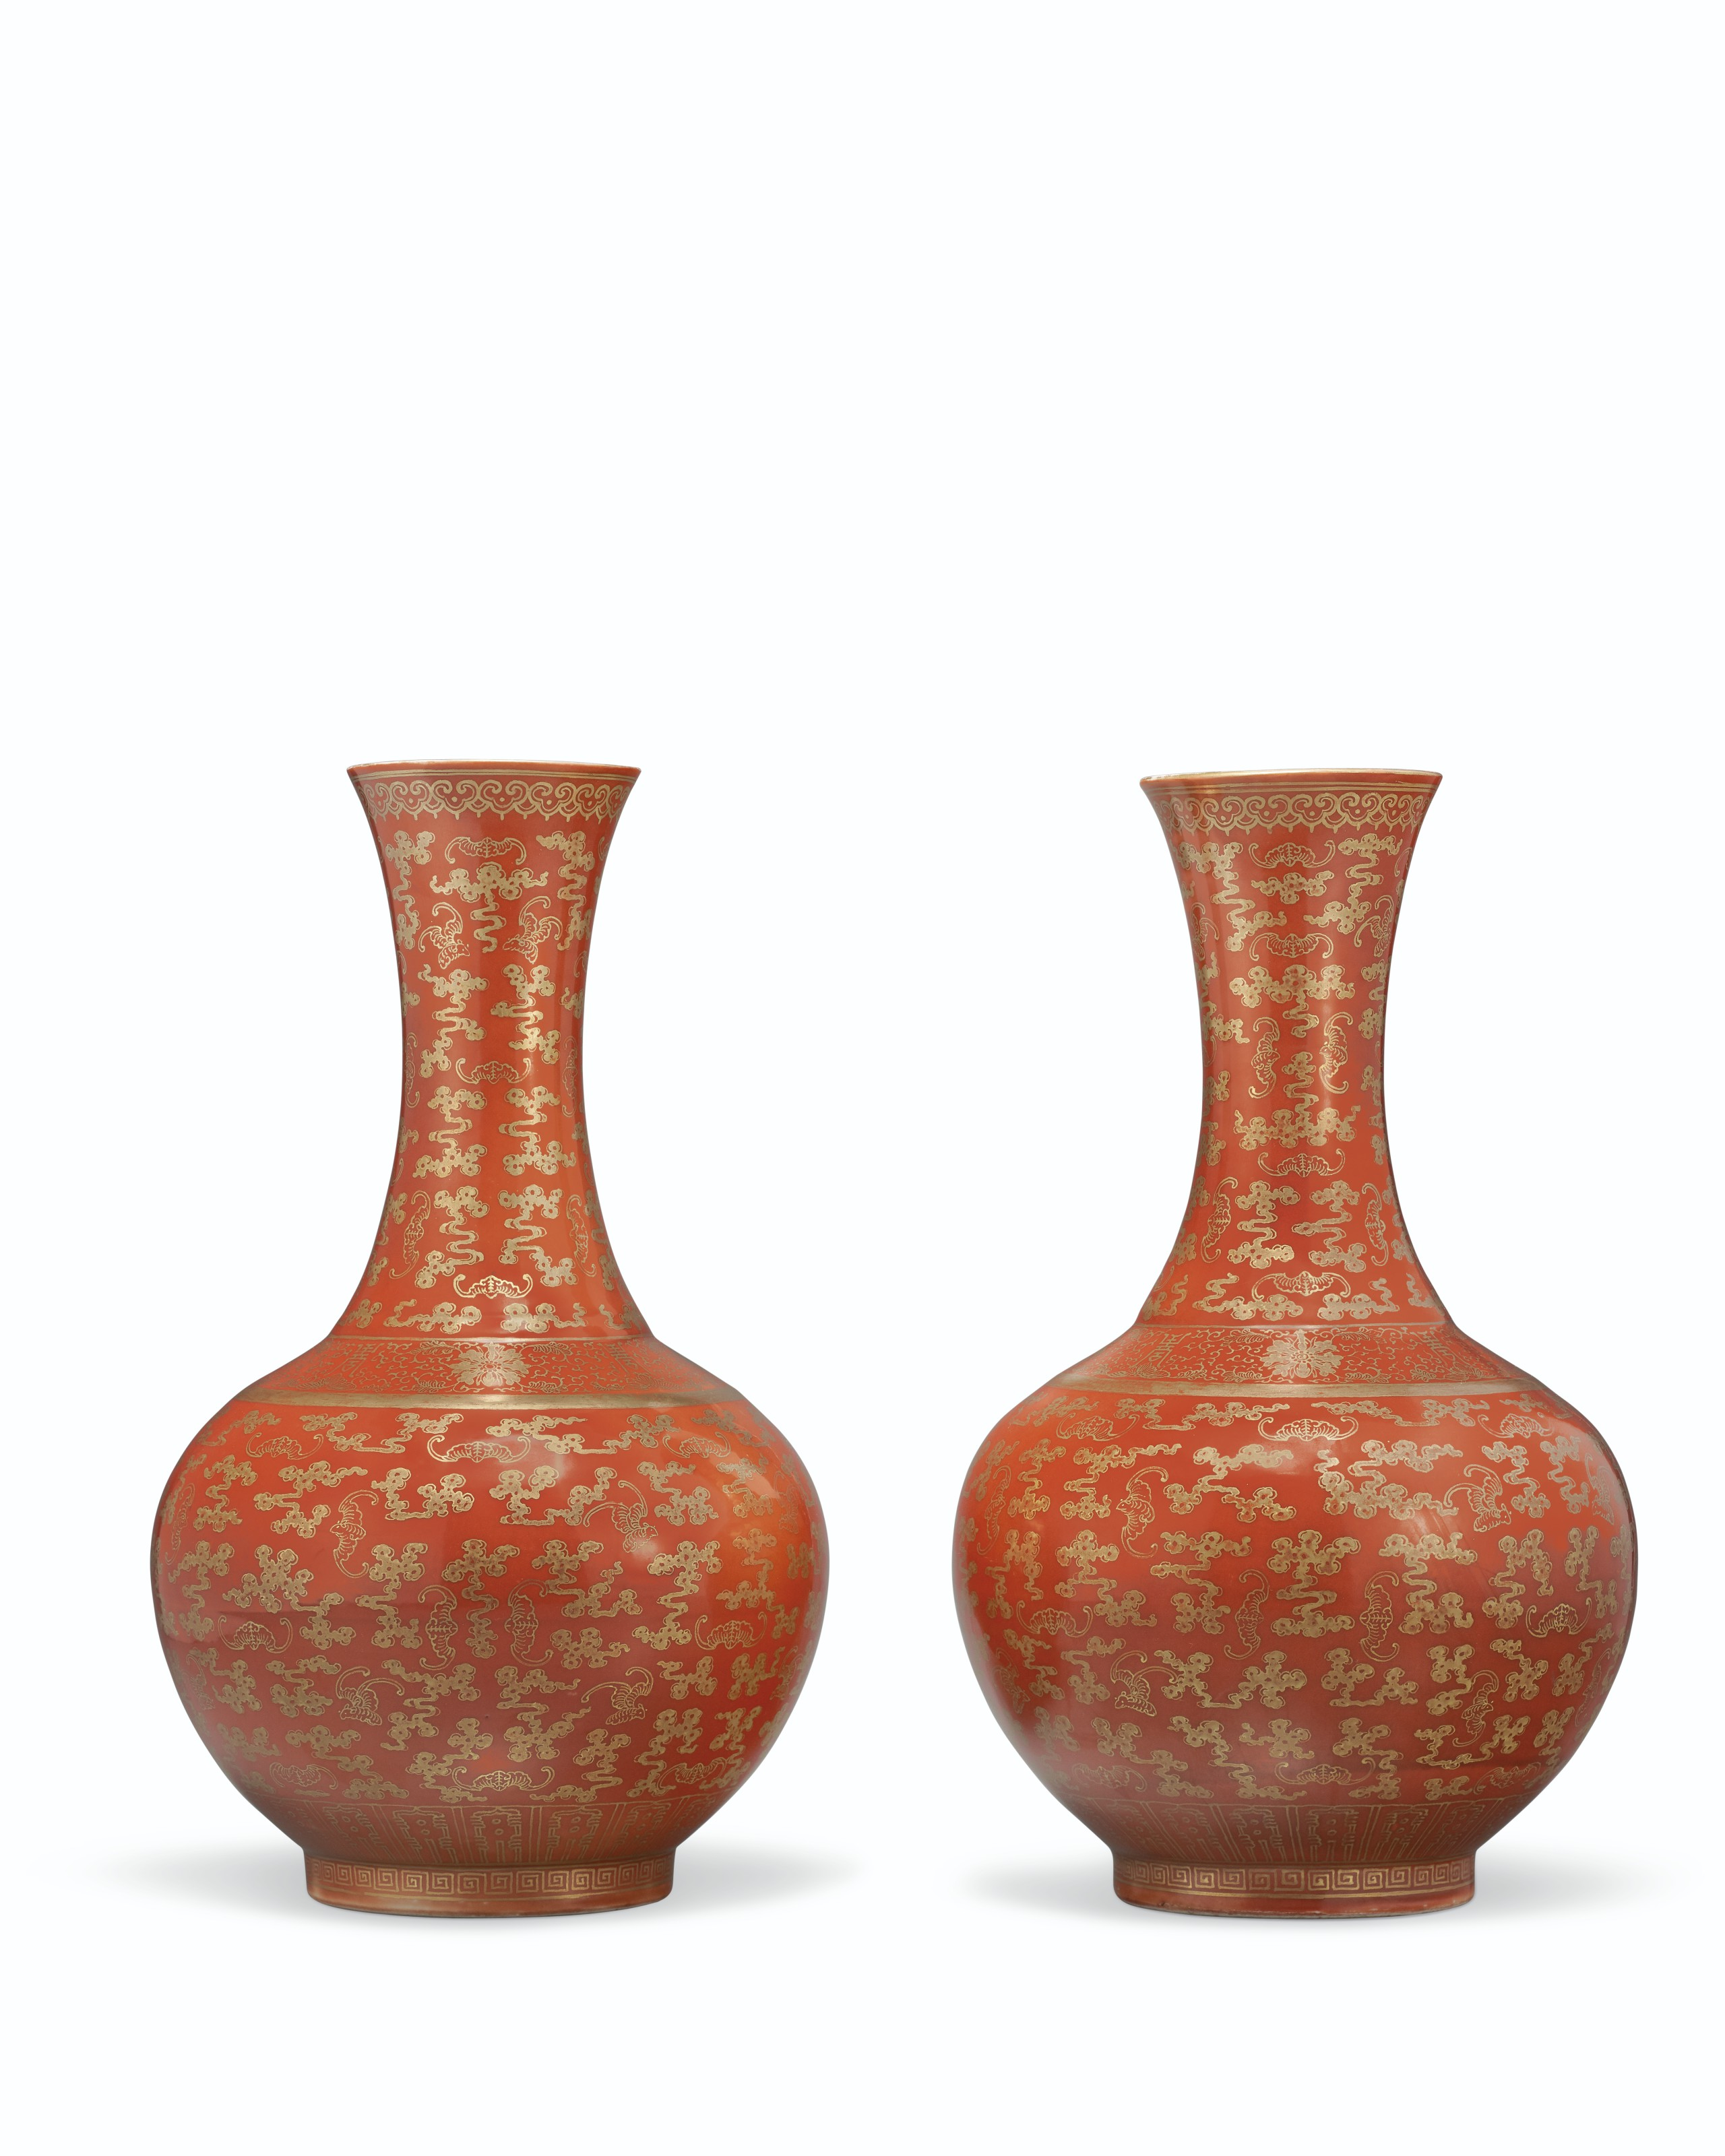 A RARE PAIR OF GILT-DECORATED CORAL-GROUND BOTTLE VASES